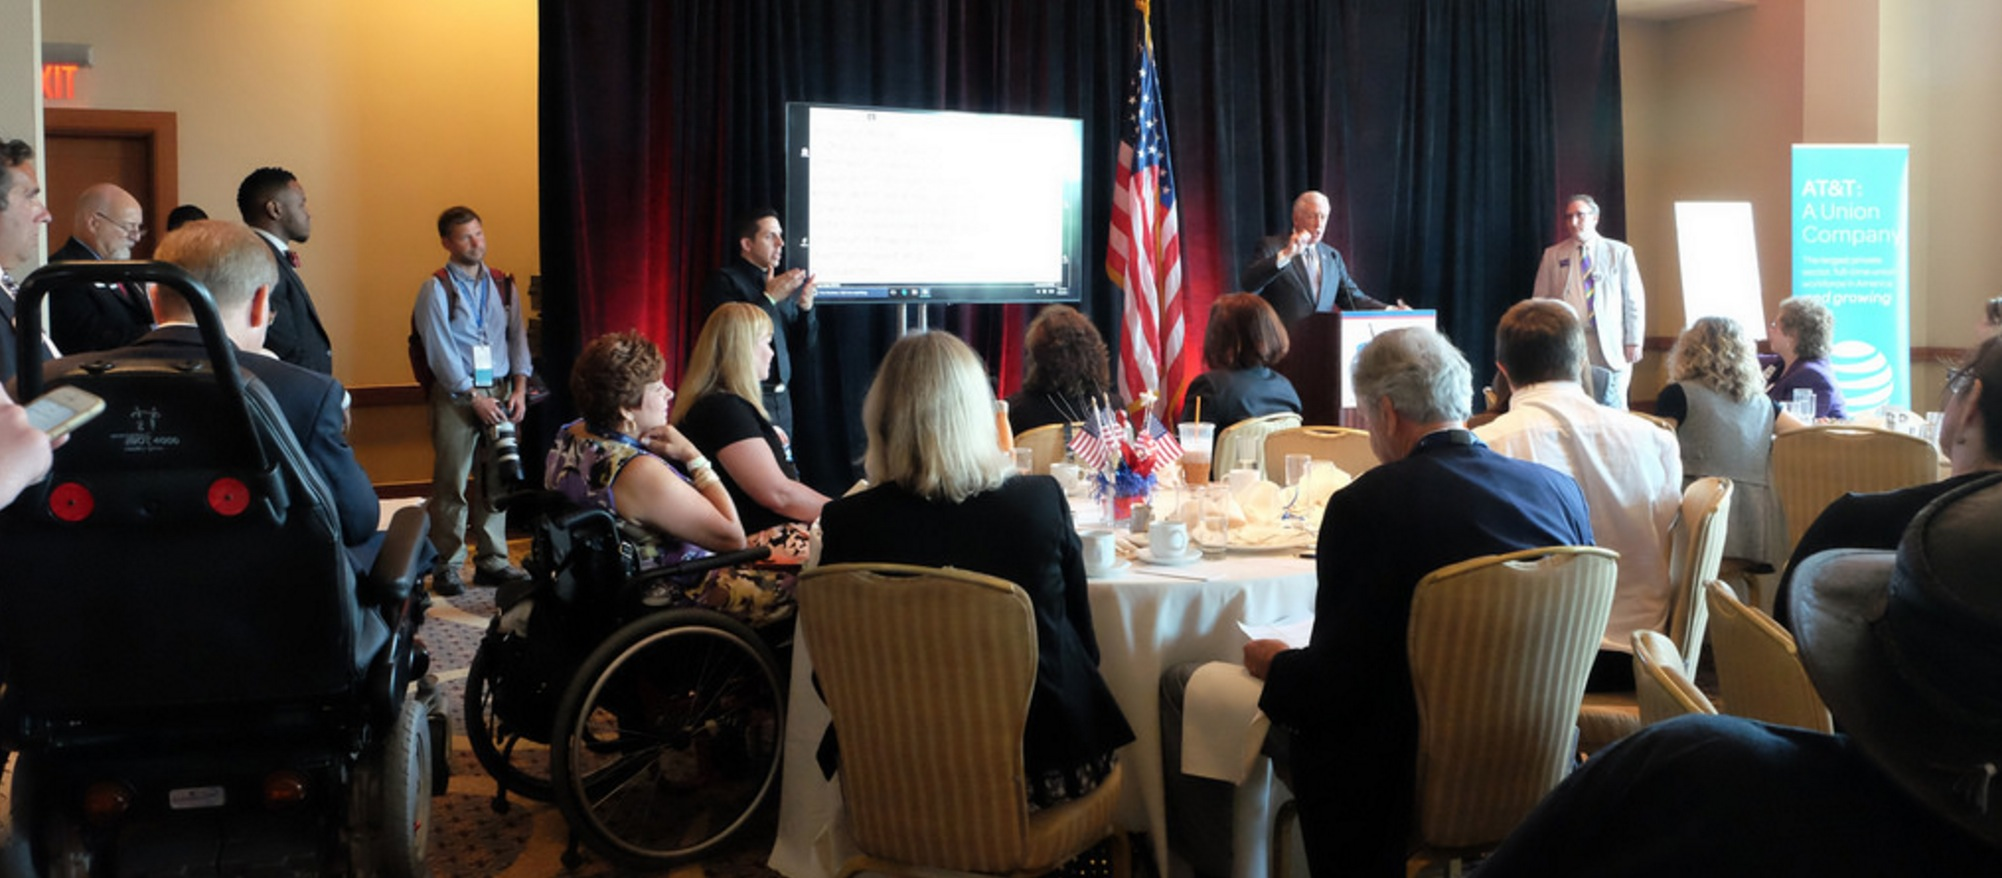 Crowd shot showing people seated in chairs and wheelchairs around tables with speakers standing in front of them, with an ASL interpreter and a screen showing live captioning